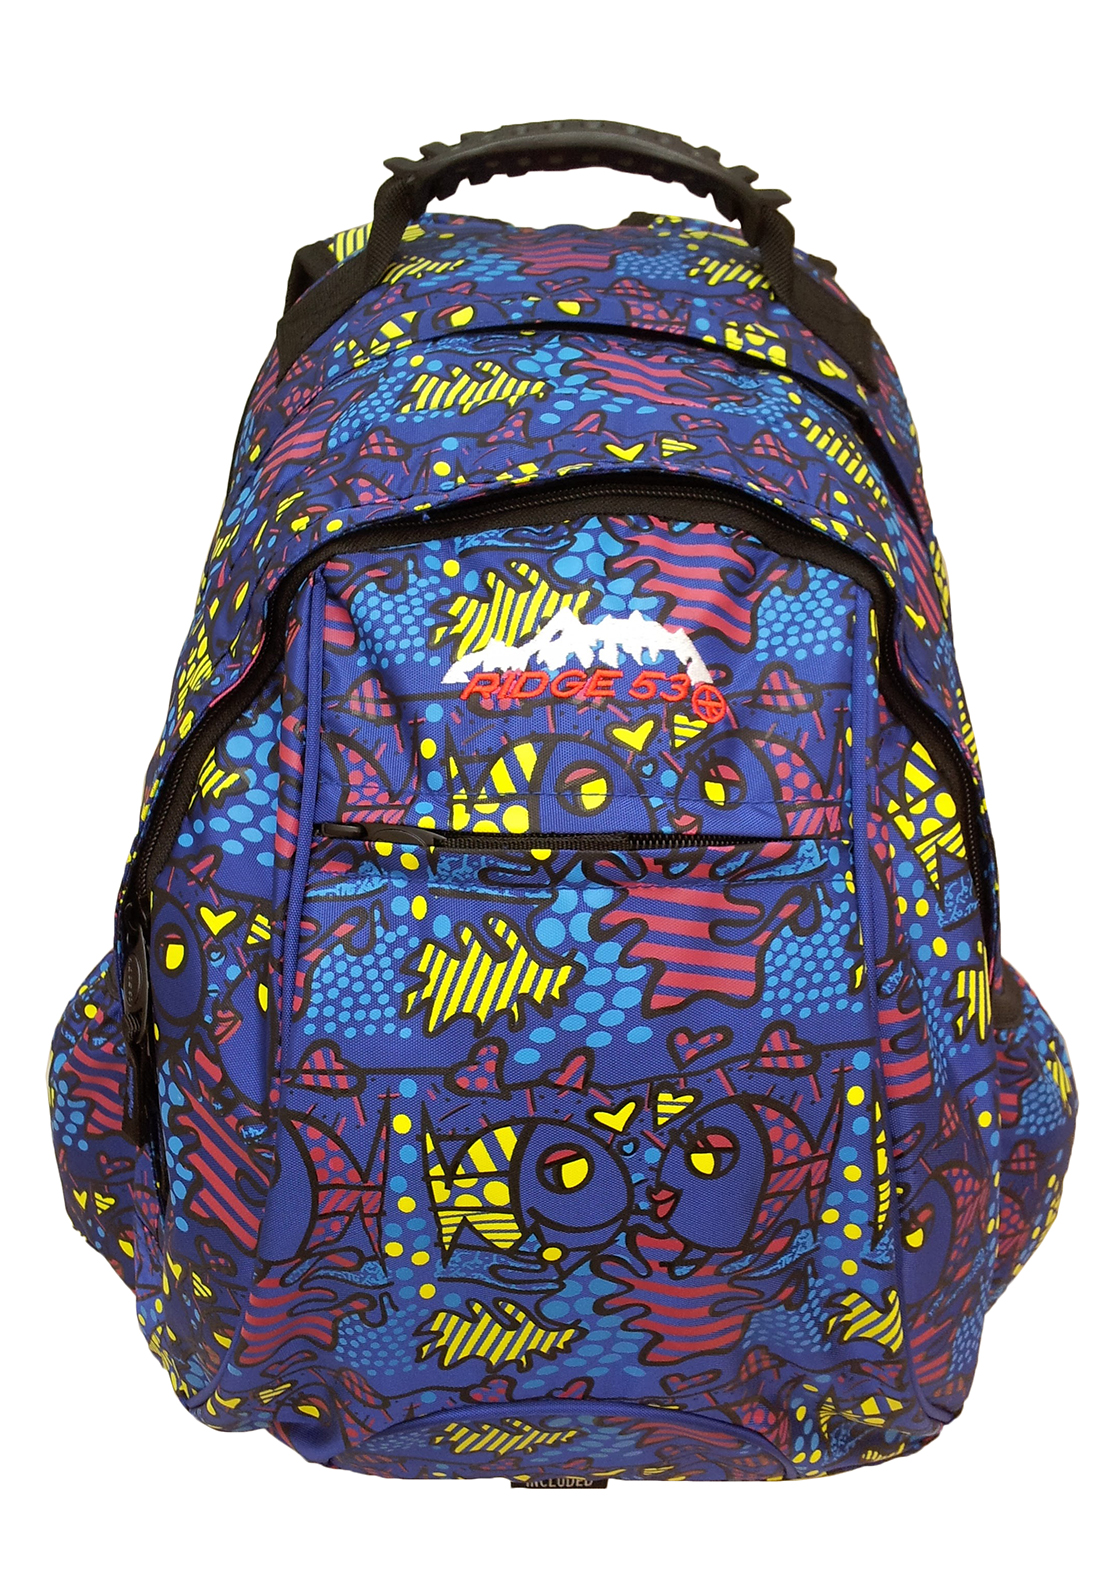 Ridge 53 Neptune Backpack School Bag, Multi-Coloured